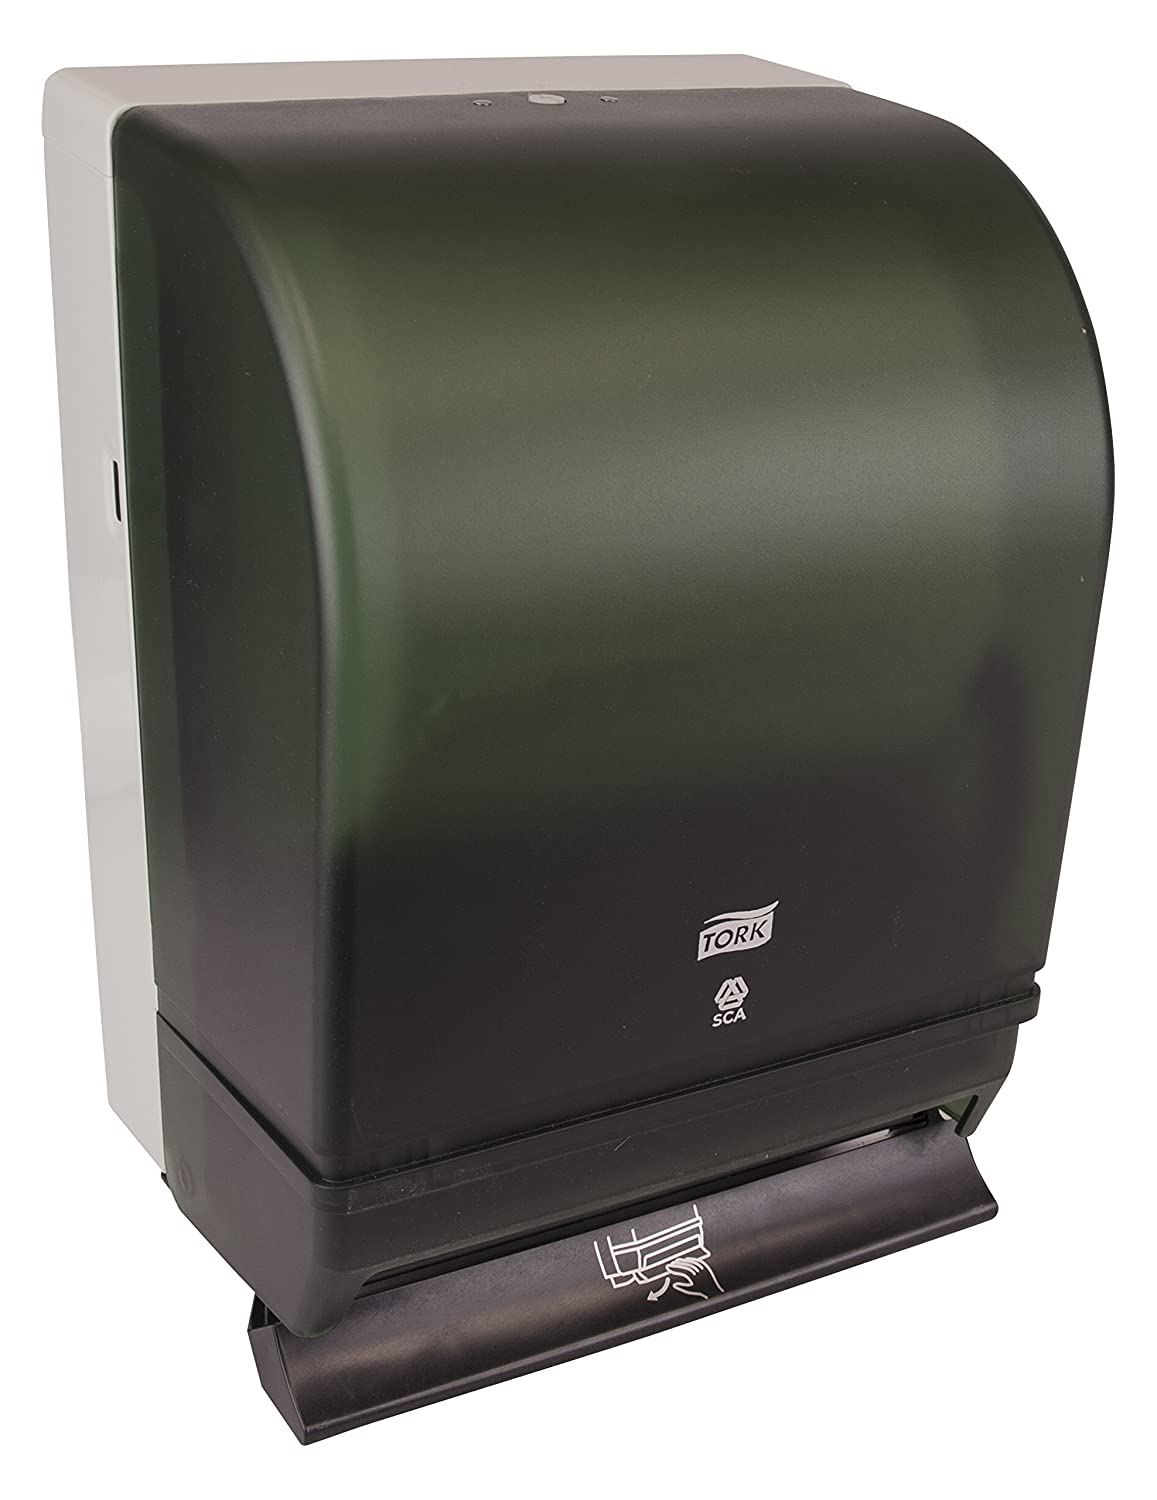 Tork 87T Hand Towel Roll Dispenser, Push Bar, Auto Transfer, Plastic Door w/Steel Back, 15.75